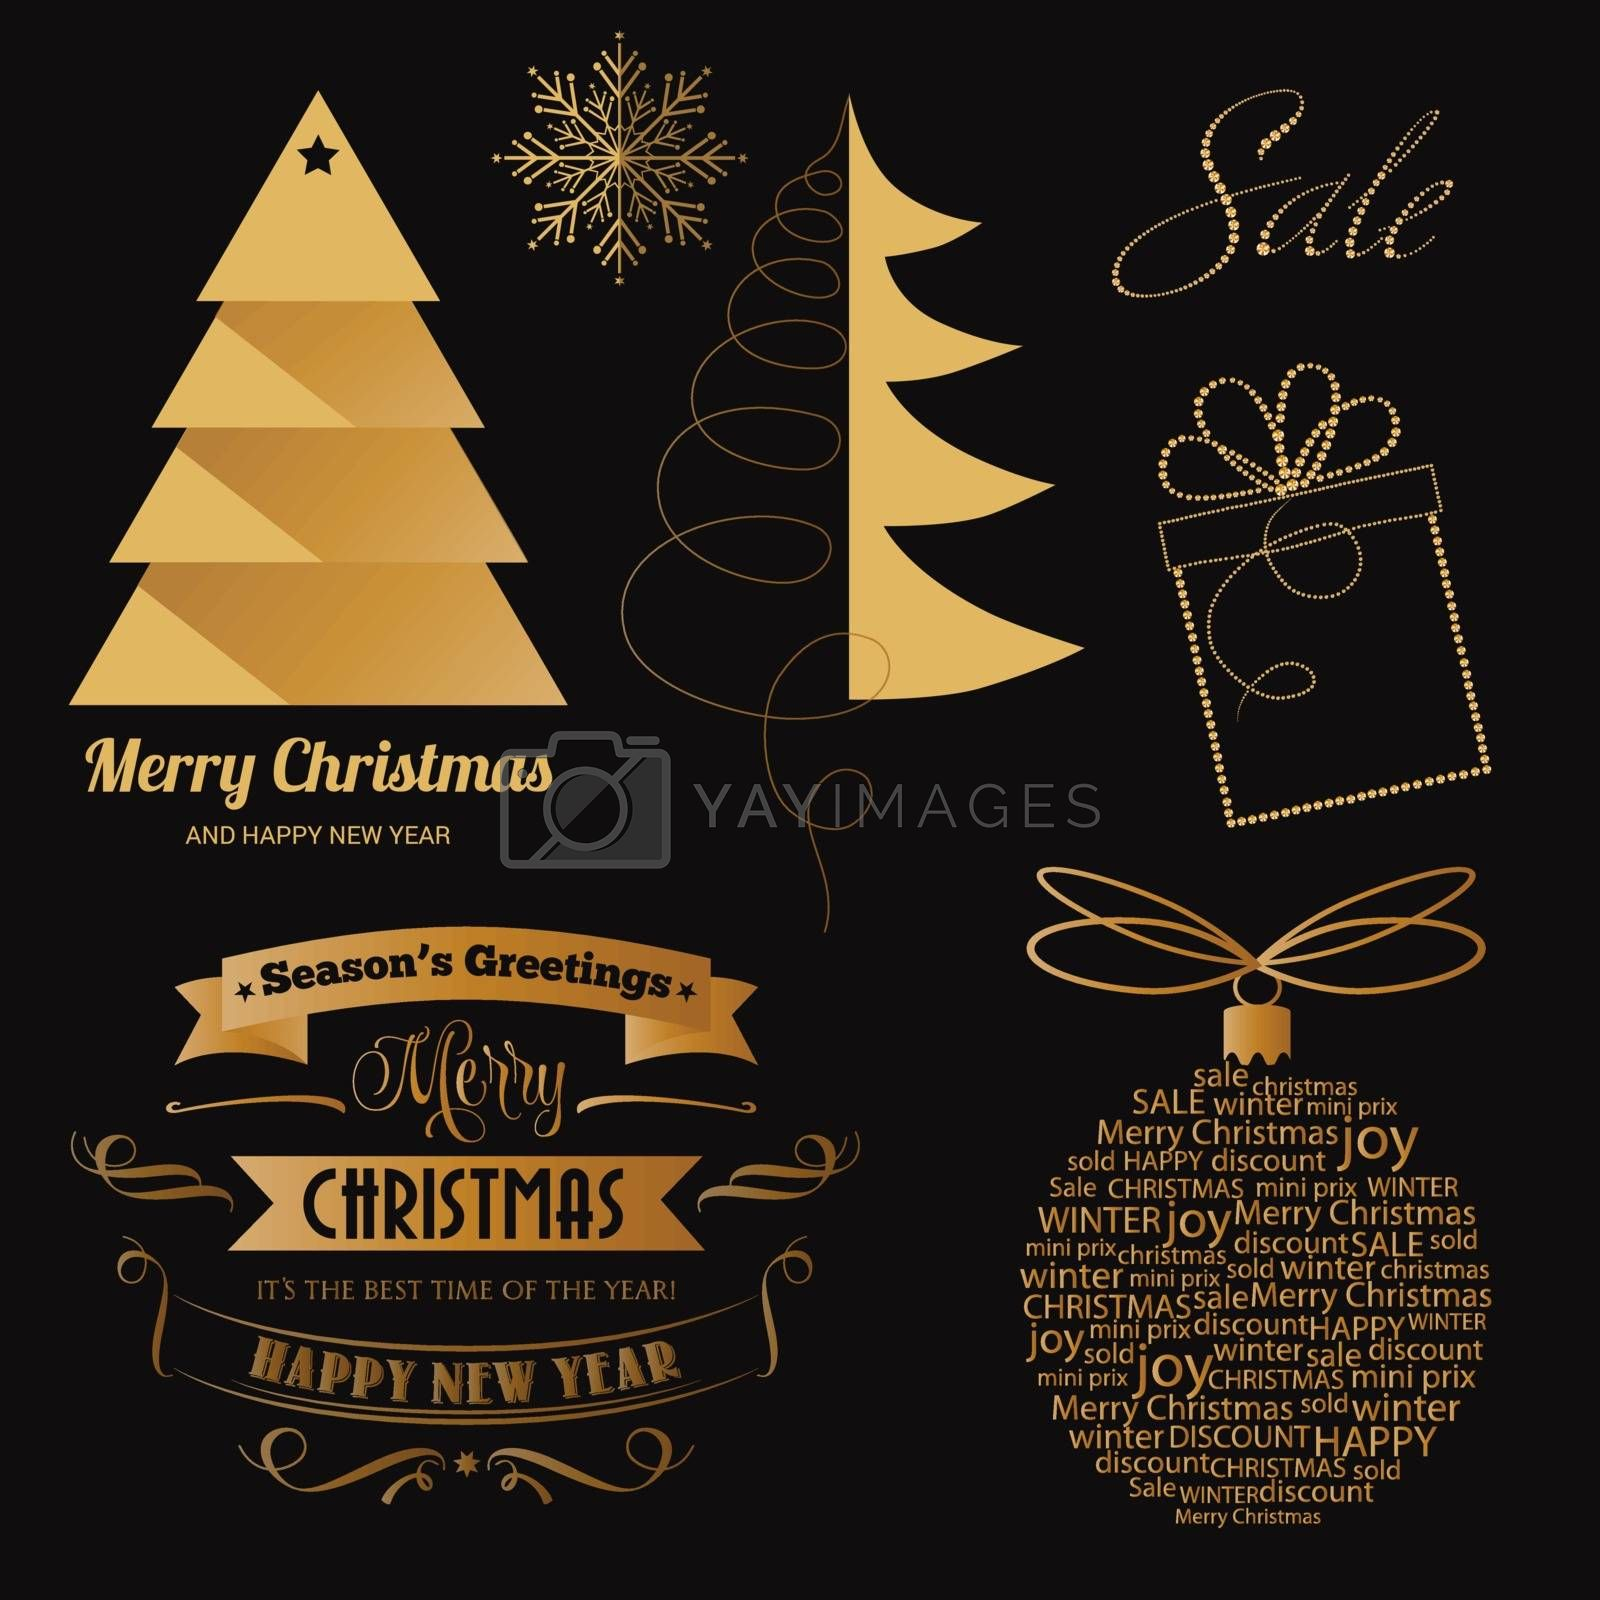 Festive golden Christmas items collection for Christmas sale